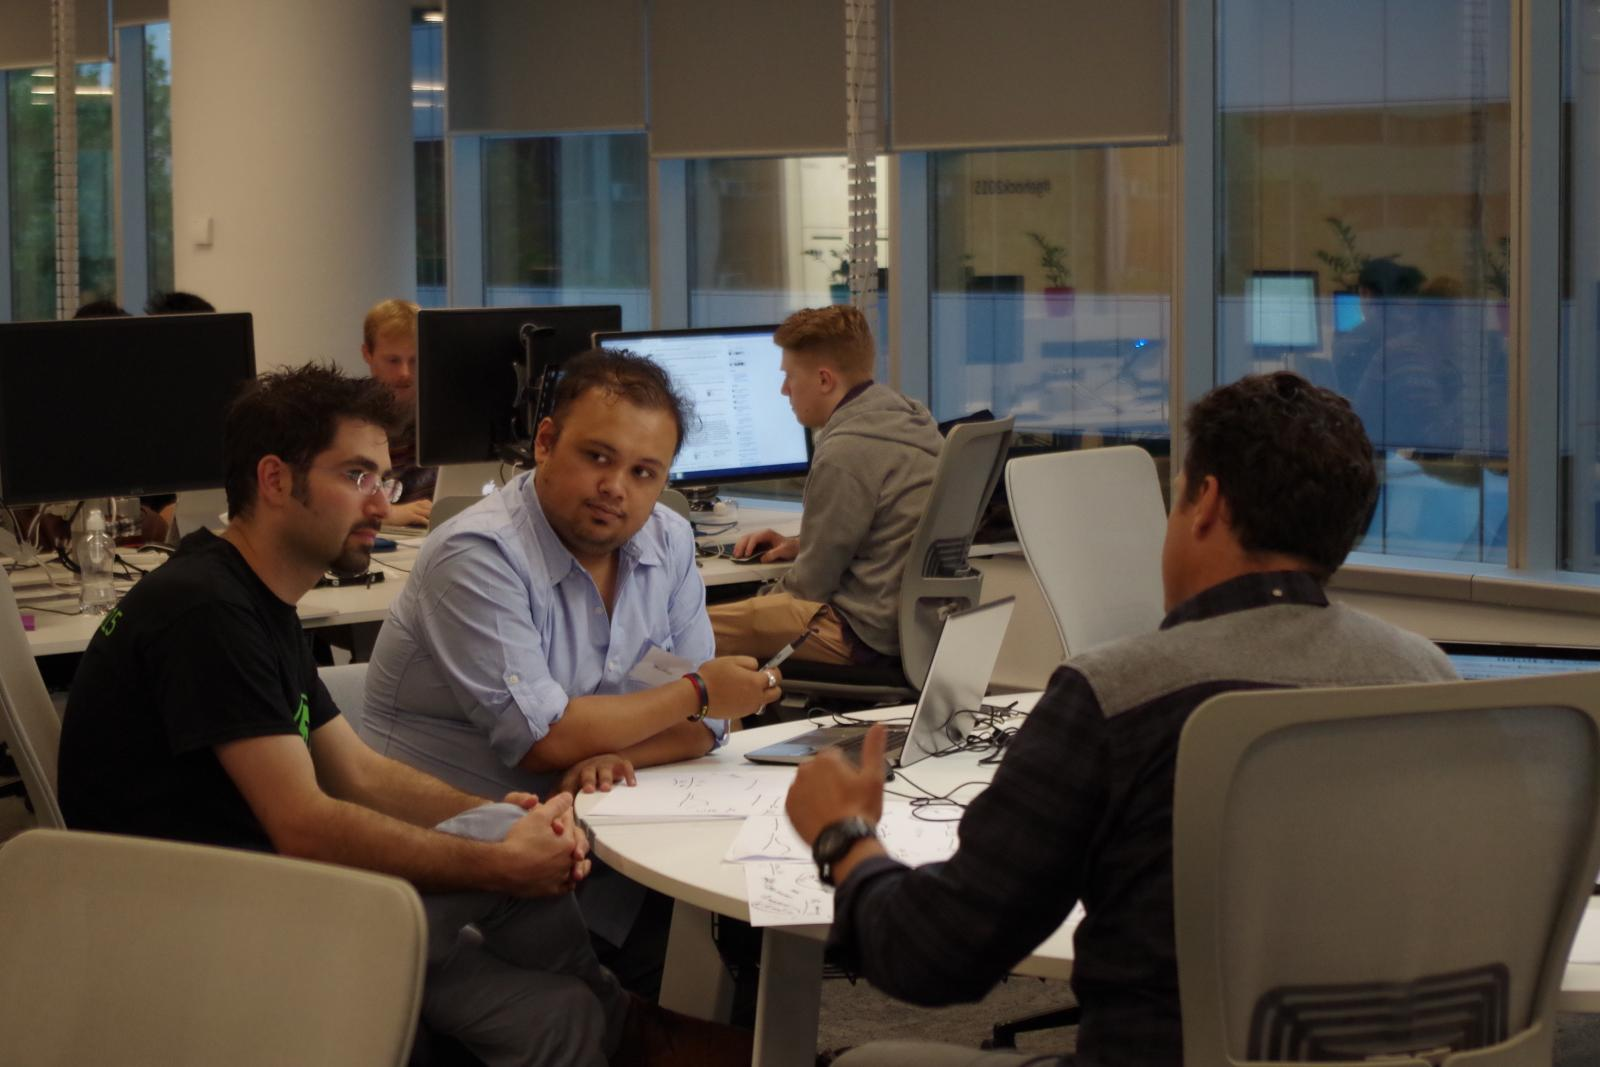 """><br /> <br /> <em>The ideas machine in action: while some concentrate on code, others debate the commercial strengths of their proposition.</em><br /> <br /> <strong>Heard on the hackathon floor</strong><br /> <br /> During the course of the Hackathon, the combined voices on Level 3 in GE's light-filled North Sydney offices speak volumes about their thinking and where they're coming from:<br /> <br /> <em>""""I'm in robotics and mechatronics . I work for Woolworths... The Industrial Internet is starting to come into play there. Real-time availability of everybody's information will help people make more informed and more timely decisions."""" </em><br /> <br /> —Dr Michael Lucas, designer, engineer<br /> <br /> <em>""""We four just finished university together. We all did engineering, at the University of Sydney. This was kind of the last project we'd do as a team, as a group of friends."""" </em><br /> <br /> —Anirban Ghose, graduate<br /> <br /> <em>""""I have a product-development business. This is what I do for a living. But I came just for a bit of fun. Sure, I do it all the time, but I work with customers, and this gives me a sense of what the development community is doing."""" </em><br /> <br /> —Ran Peleg, founder, Visionware Solutions<br /> <br /> <em>""""I like what GE is doing with industry data—it's not just for GE, it can be applied almost everywhere."""" </em><br /> <br /> —Gary Weng, director of development, SENTIBIT<br /> <br /> <em>""""I study medicine at the University of Sydney. I'm always interested in what GE does. I know GE does a lot of medical equipment, so I came here and ended up working on a project that's not related!"""" </em><br /> <br /> —Po Liu, software developer and medical student<br /> <br /> <em>""""I've got strengths in commercialisation, in software development and user experience but I'm not an engineer, so the big challenge I found was taking my approach and adapting it to the engineers. The engineers are very detailed, they're more expansive and I'm more """